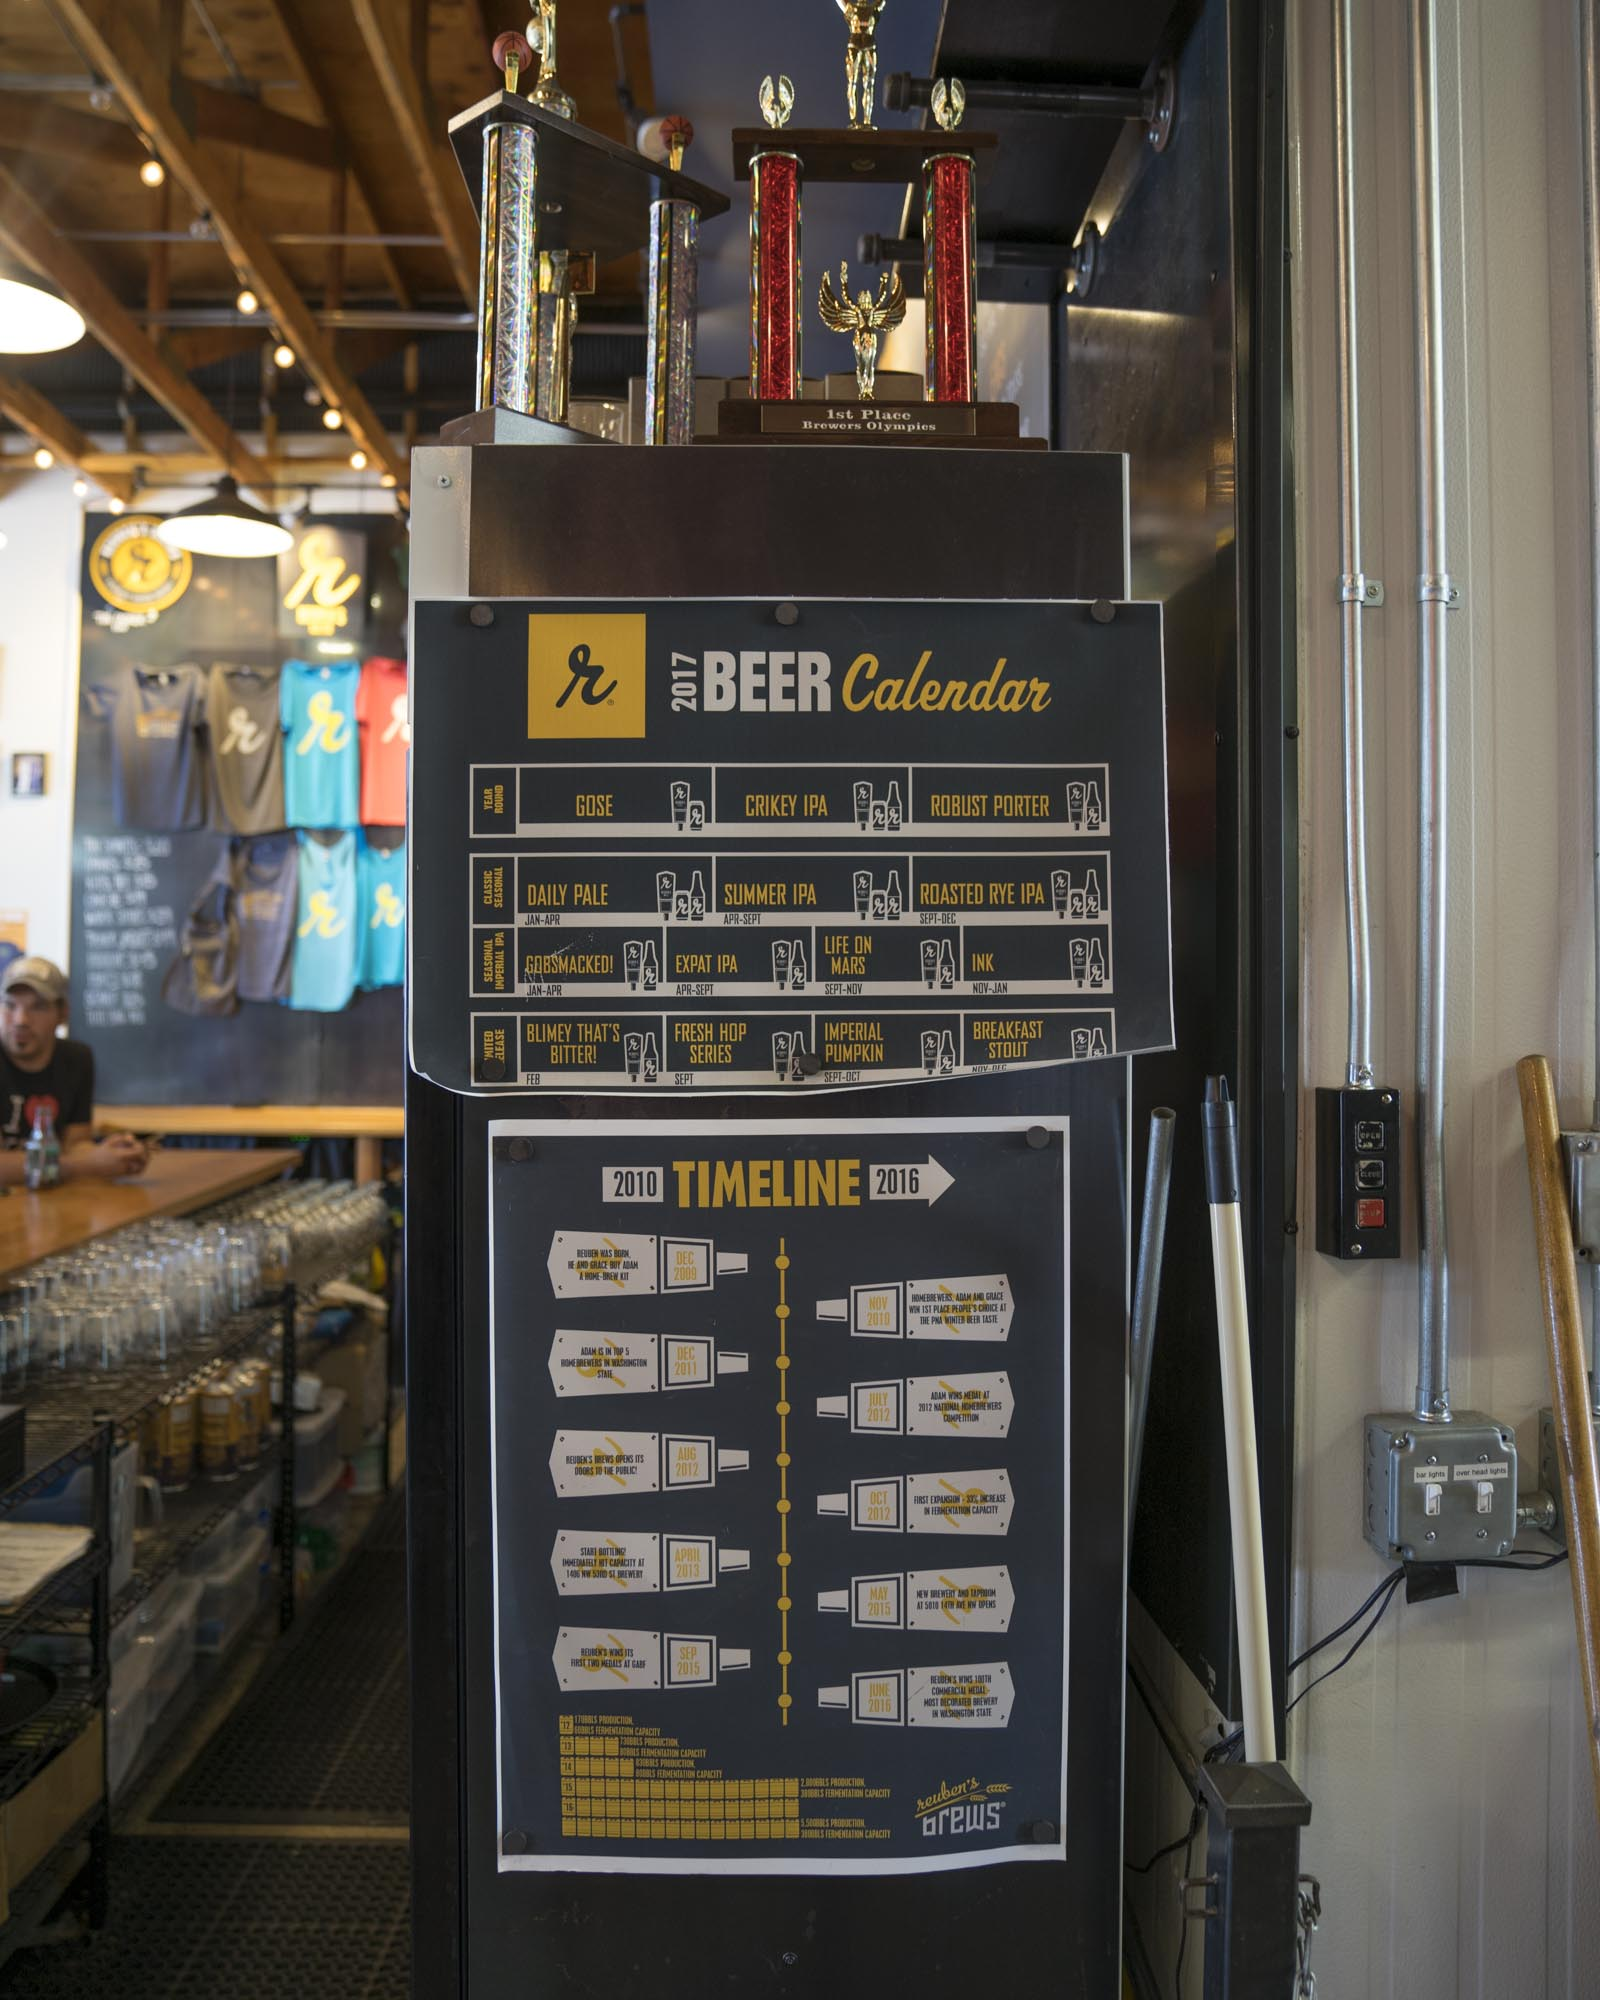 The launch timeline for Reuben's Brews in Seattle. A homebrewery turns into a pro!